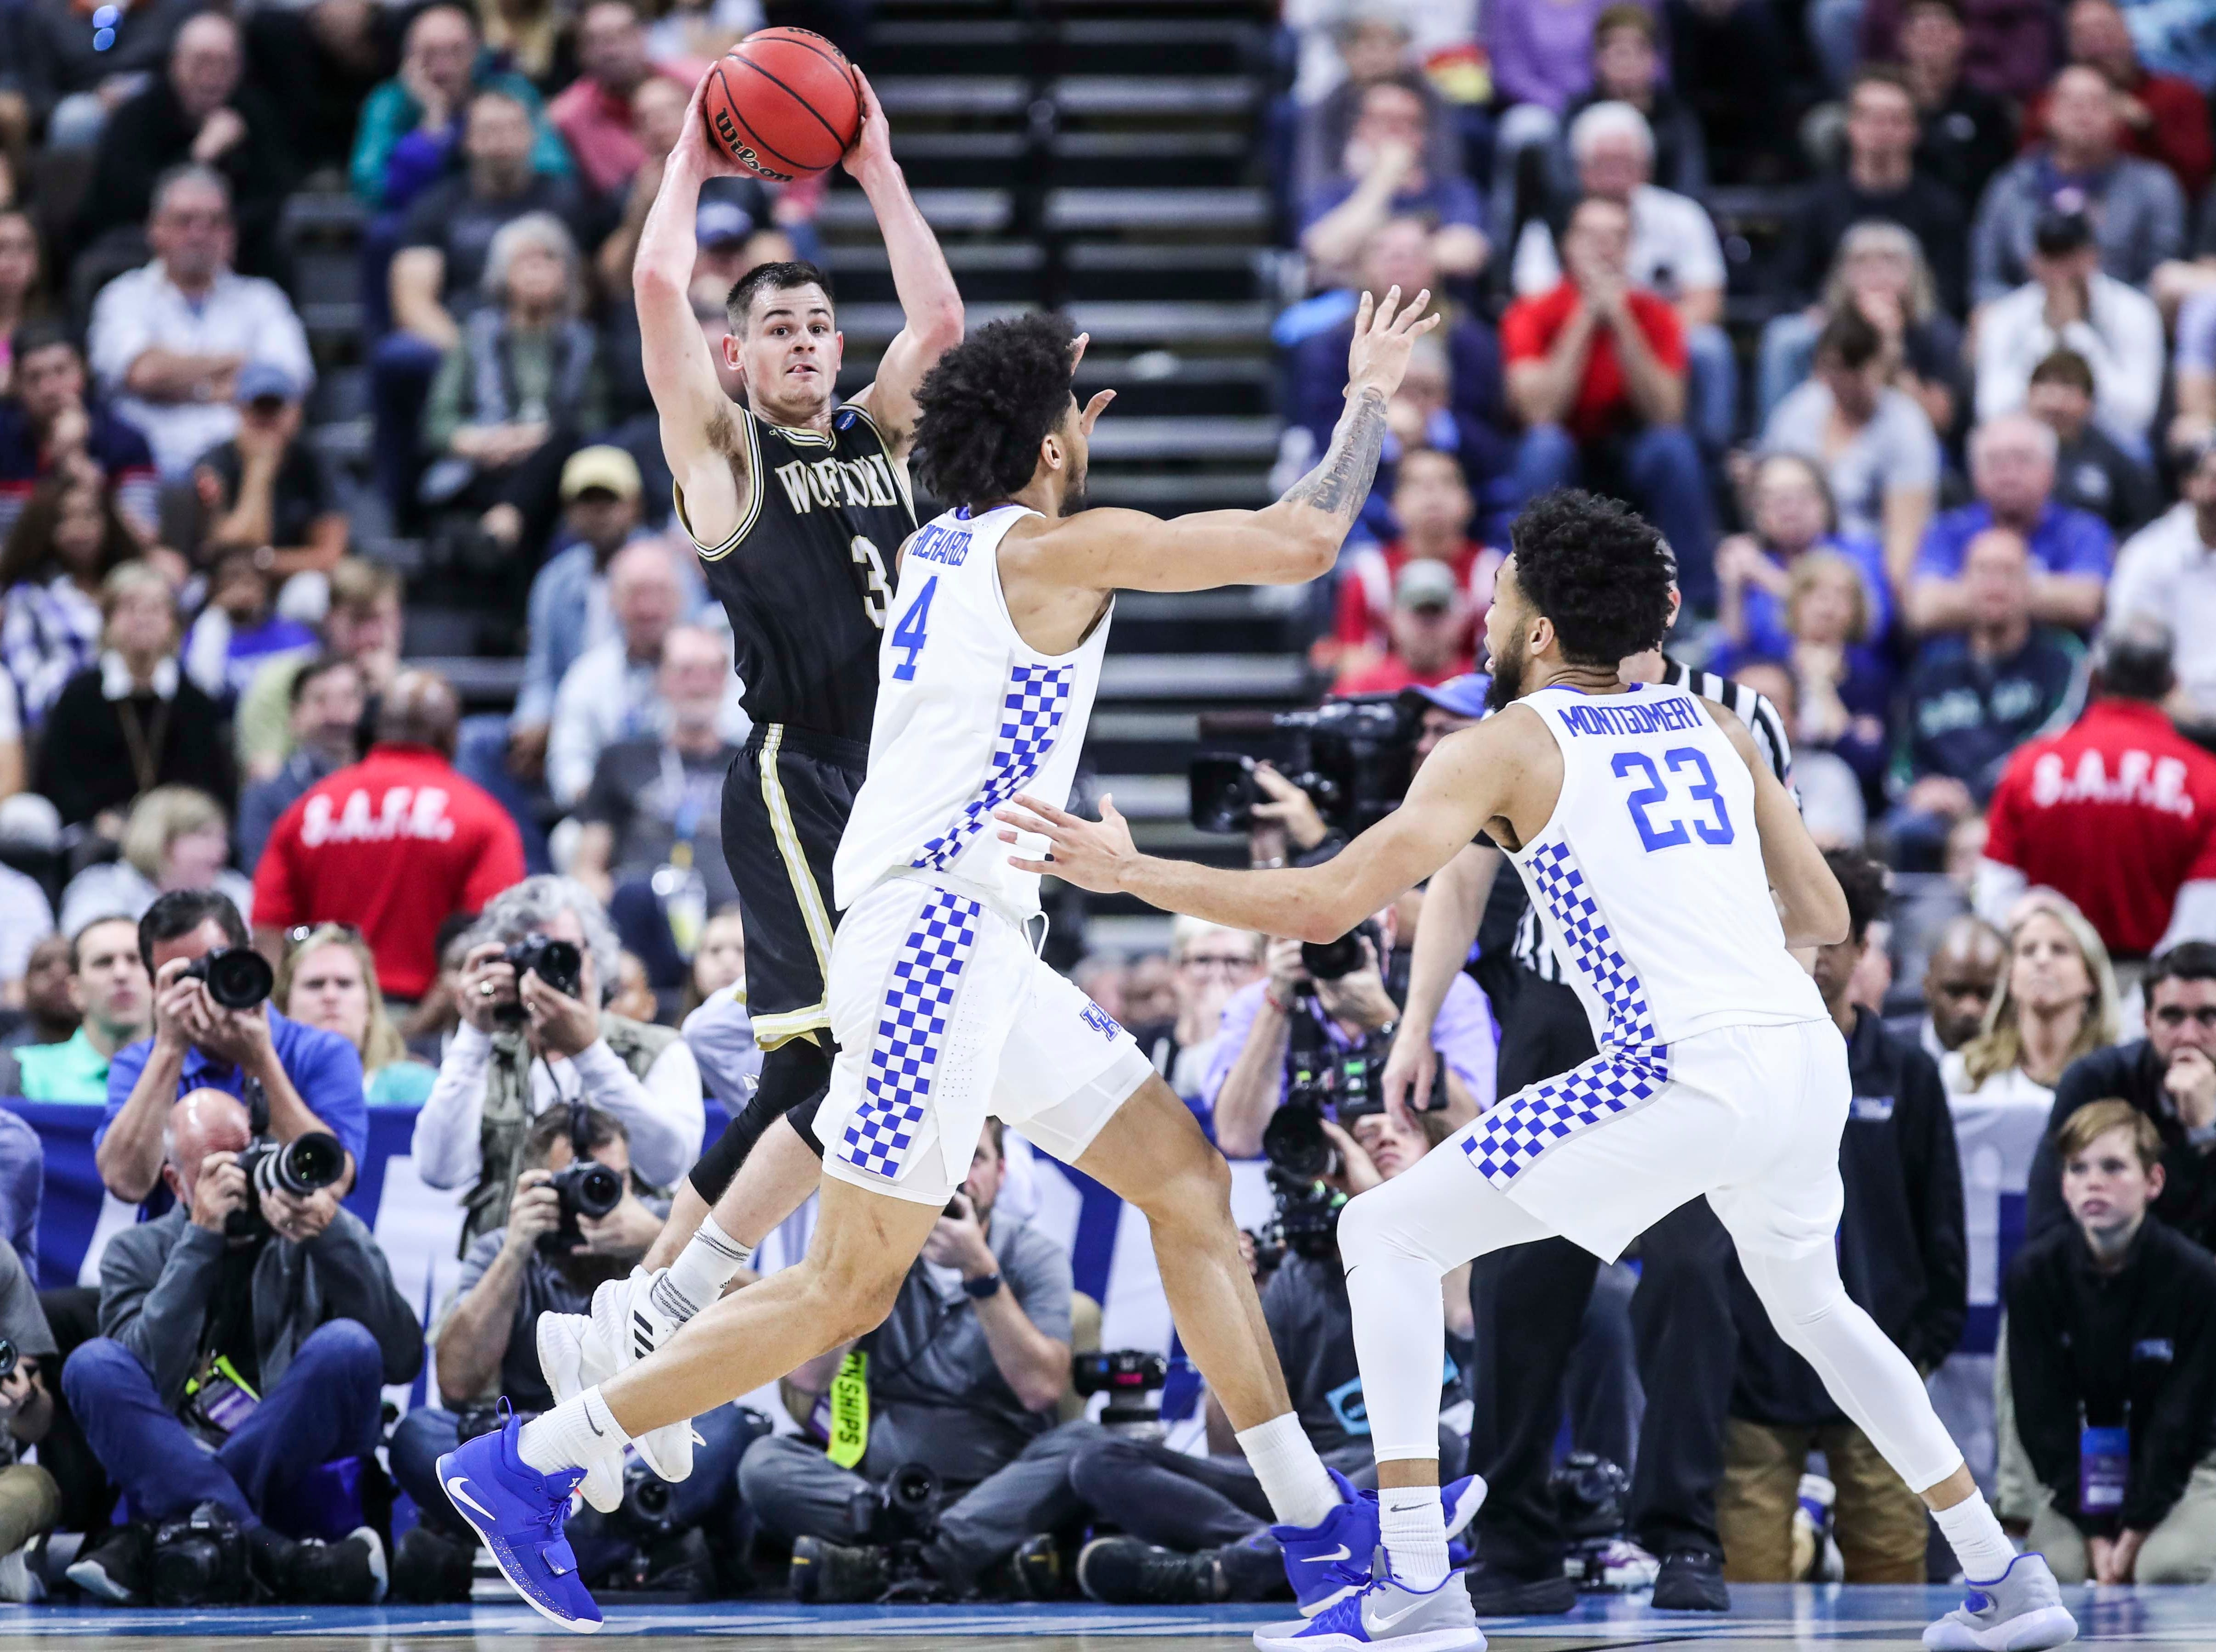 Wofford's Fletcher Magee -- who became the NCAA's all-time leading three-point scorer this season --  went 0-for-12 in three point shooting as the Wildcats muscled its way past a tenacious Wofford 62-56 in the second round game of the 2019 NCAA tournament in Jacksonville, Fla. March 23, 2019